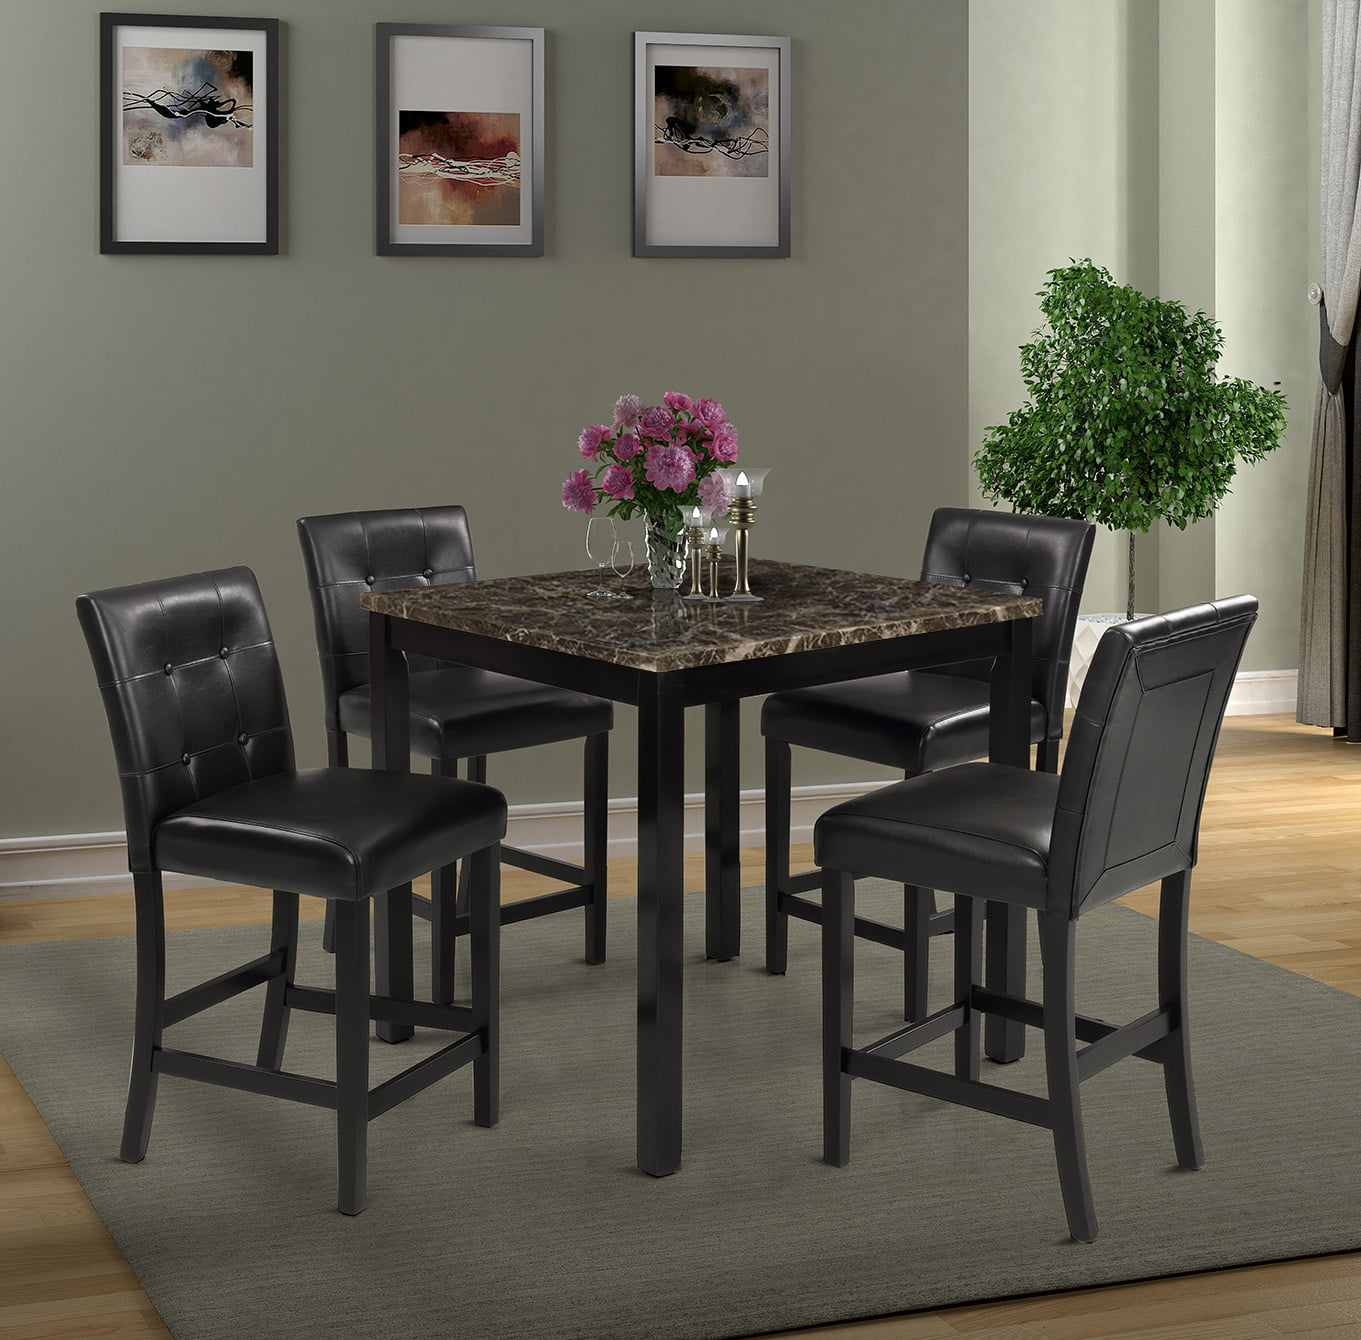 Harper Bright Designs 5 Piece Counter Height Dining Set With Faux Marble Table Top Multiple Colors Walmart Com Walmart Com